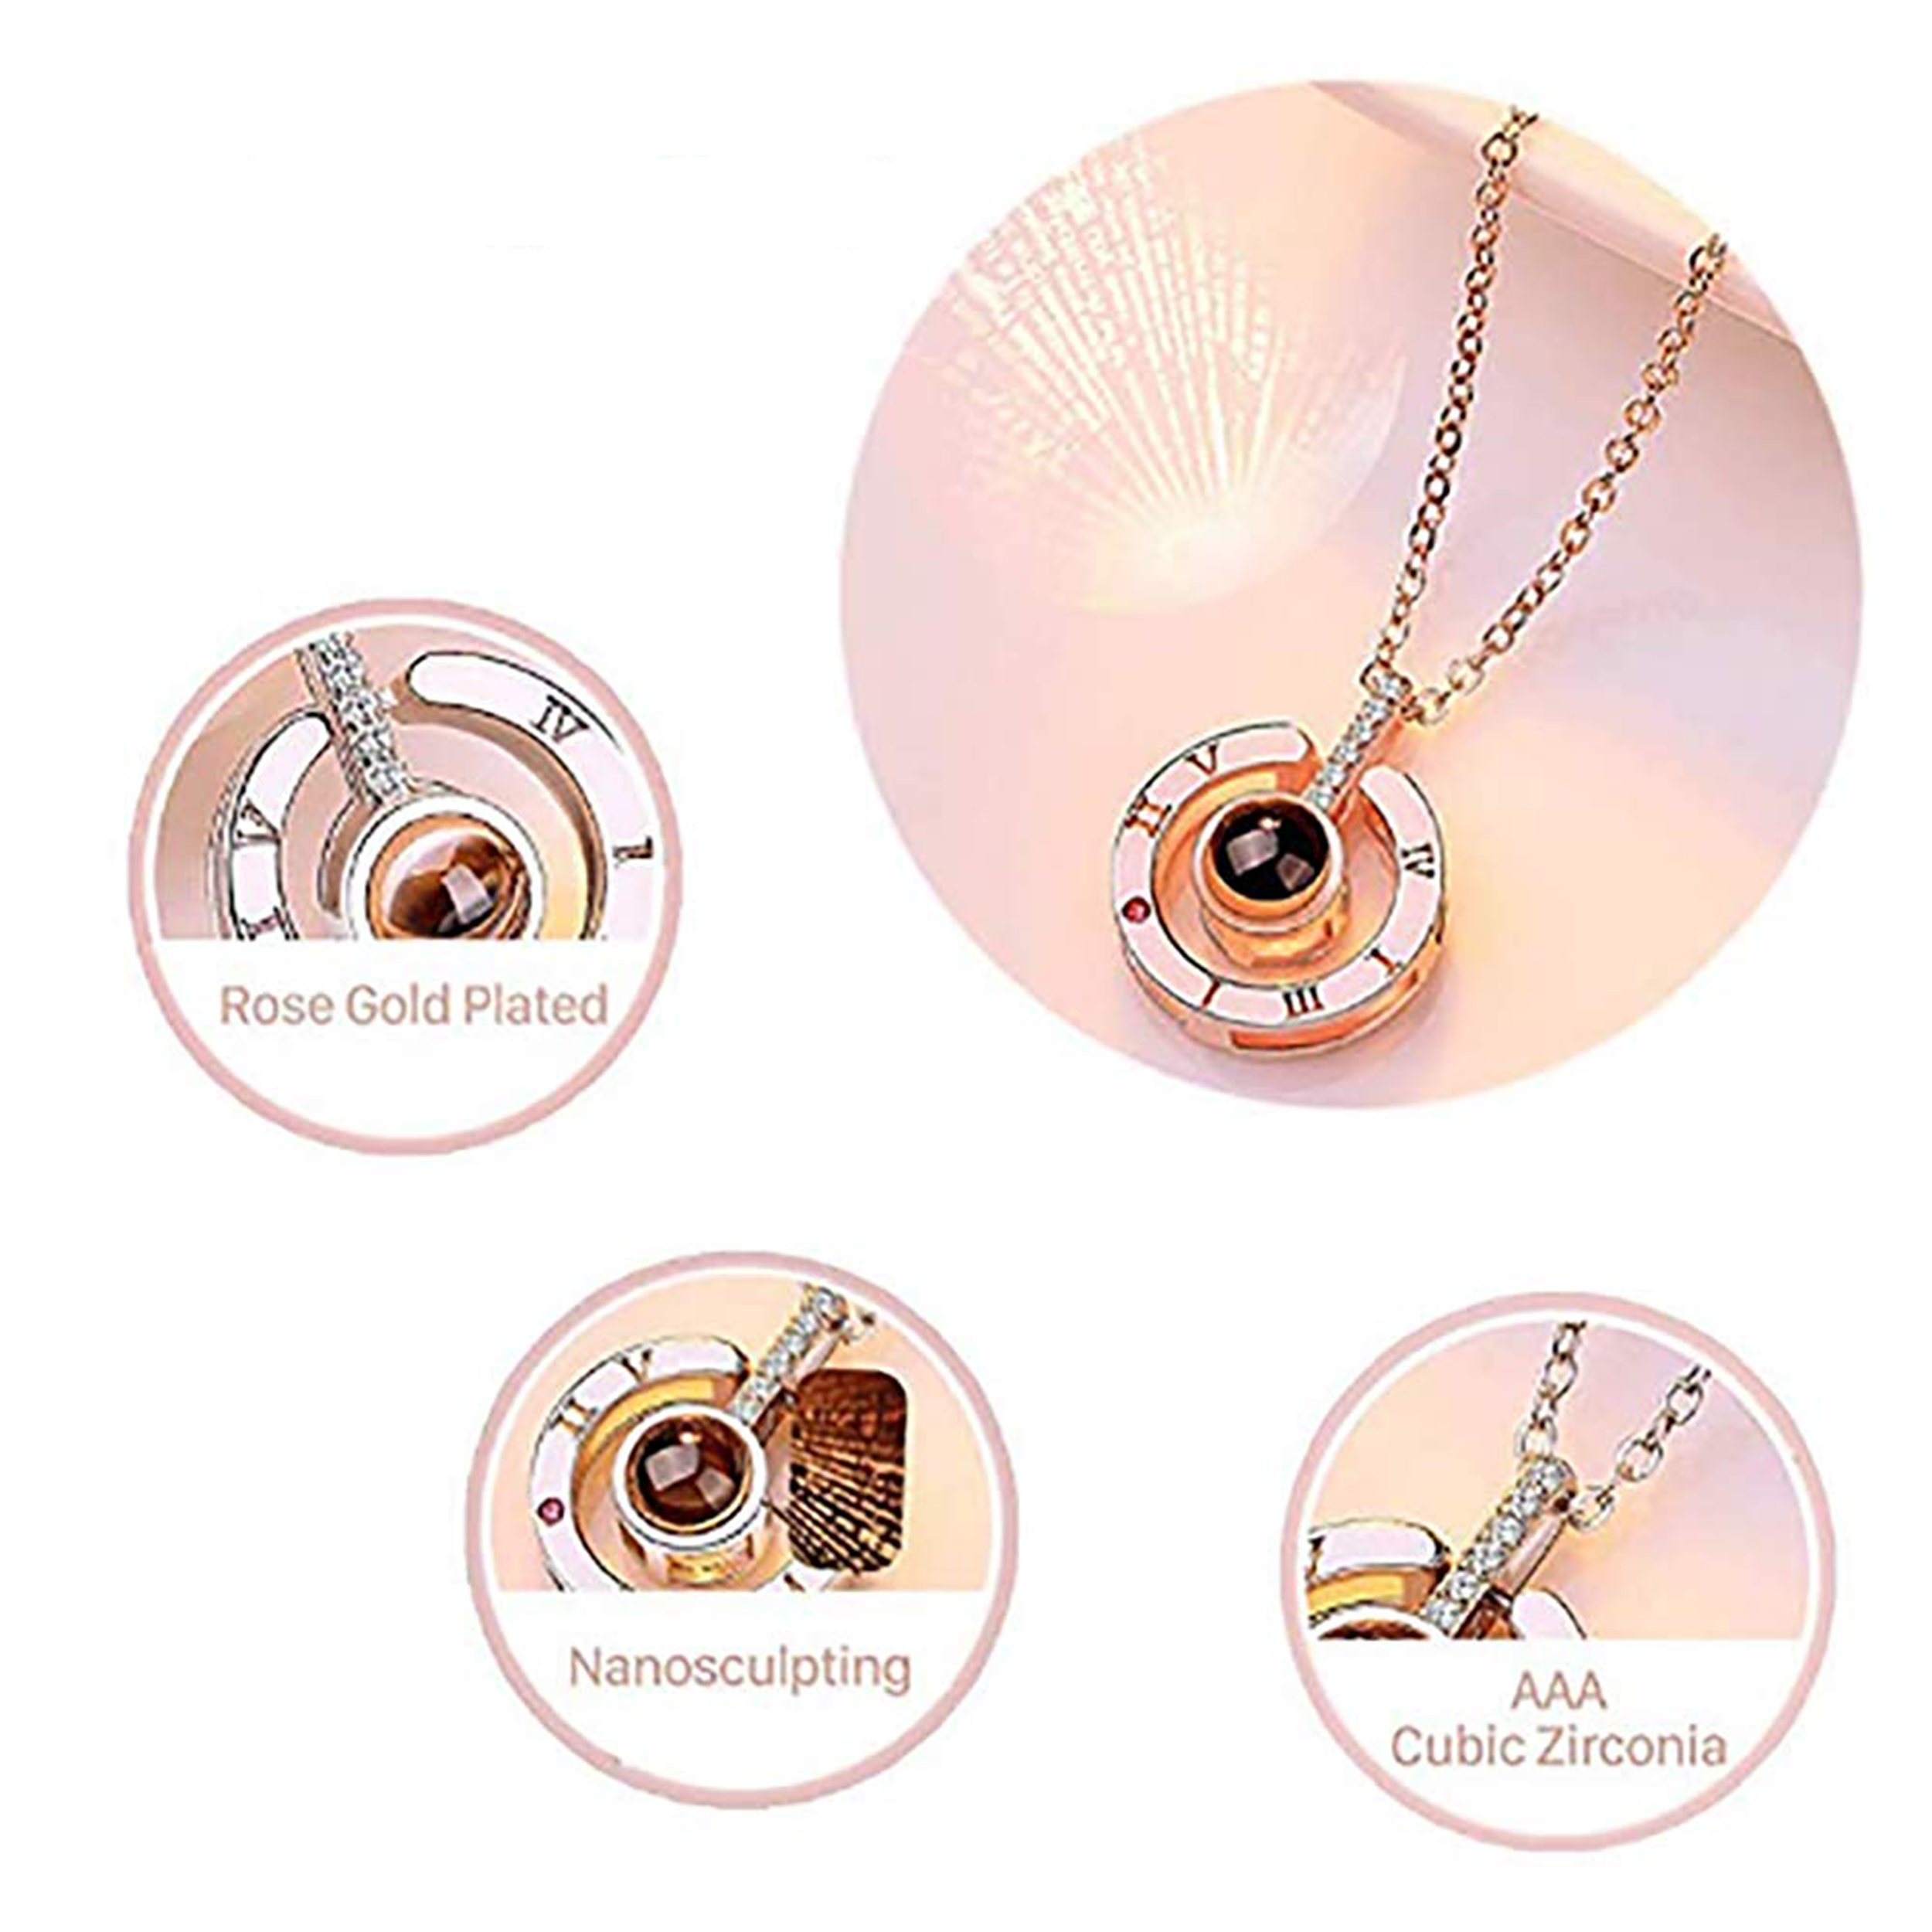 61DVBTmO0sL._UL1001_ I Love You Necklace 100 Languages Gift Set | Nano Jewelry Projection Necklace | Romantic Gifts for Her